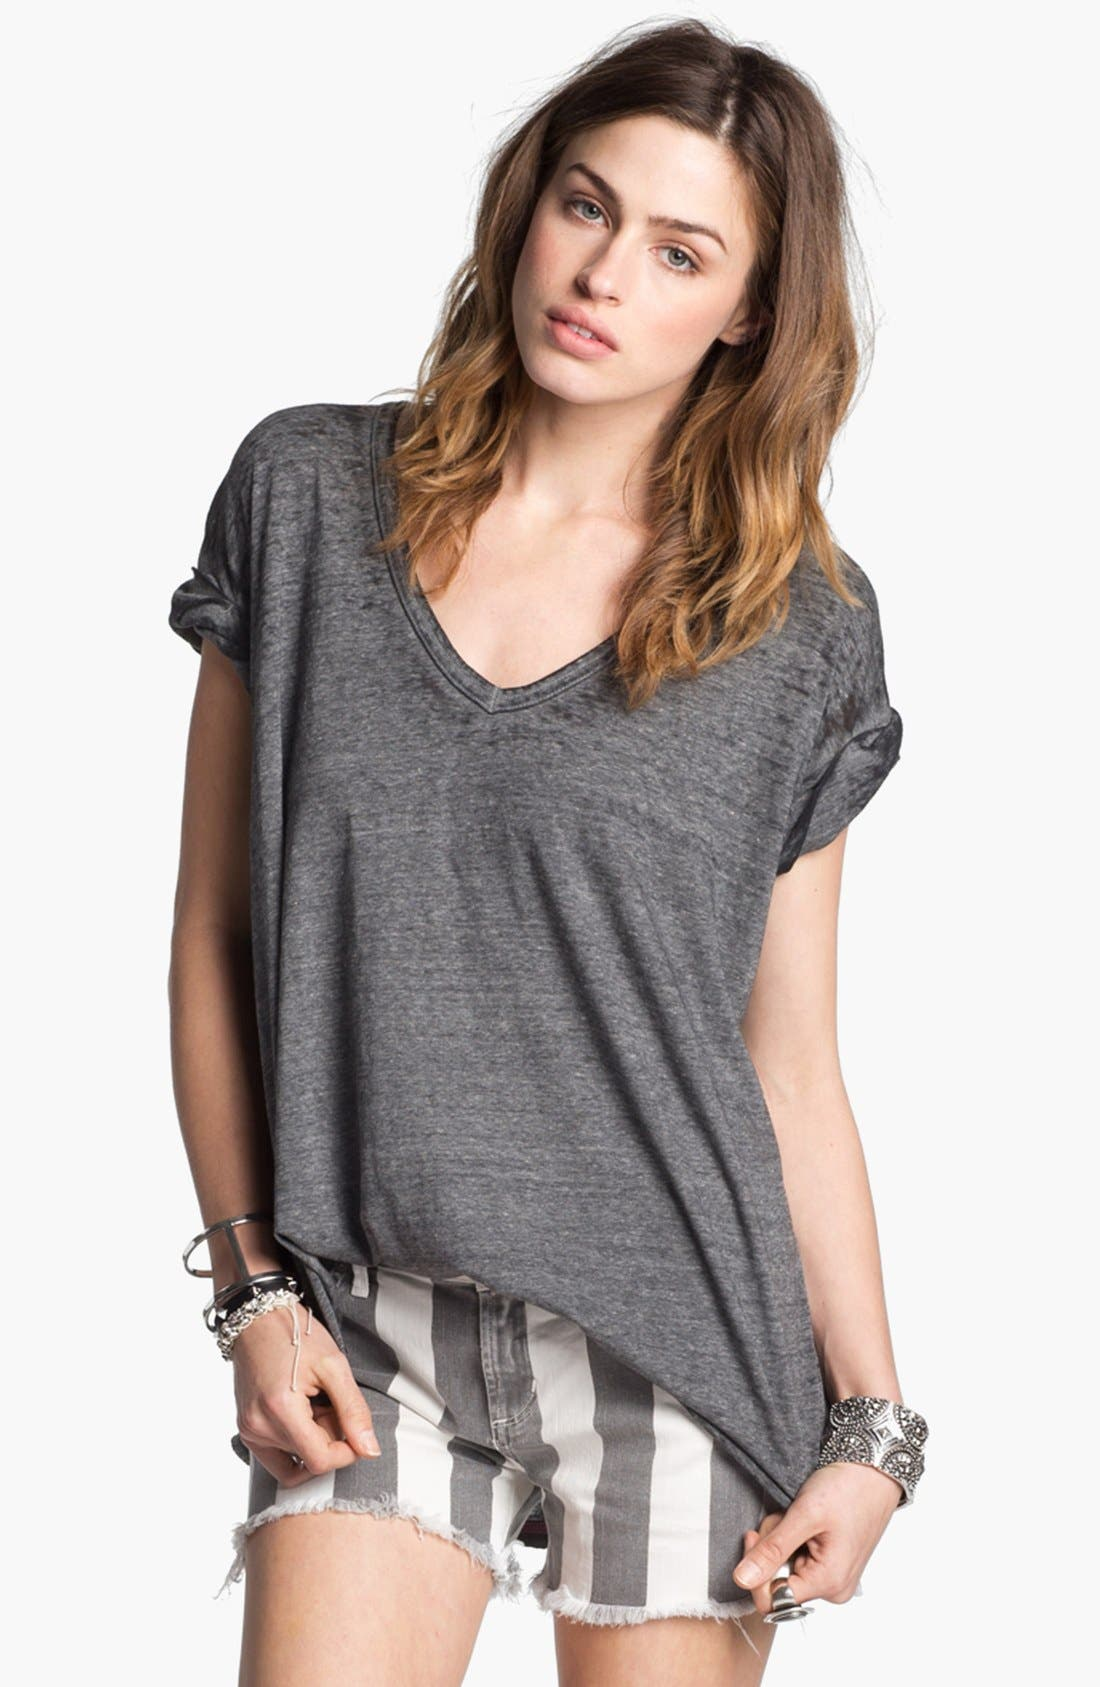 Alternate Image 1 Selected - Free People 'Keep Me' V-Neck  Burnout Tee